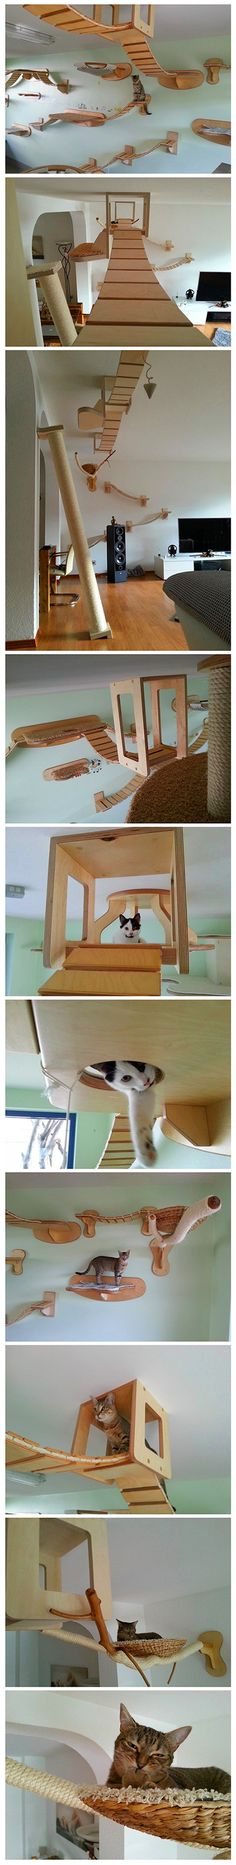 Geeks Transform Entire Room into a Giant Suspended Cat Playground - TechEBlog